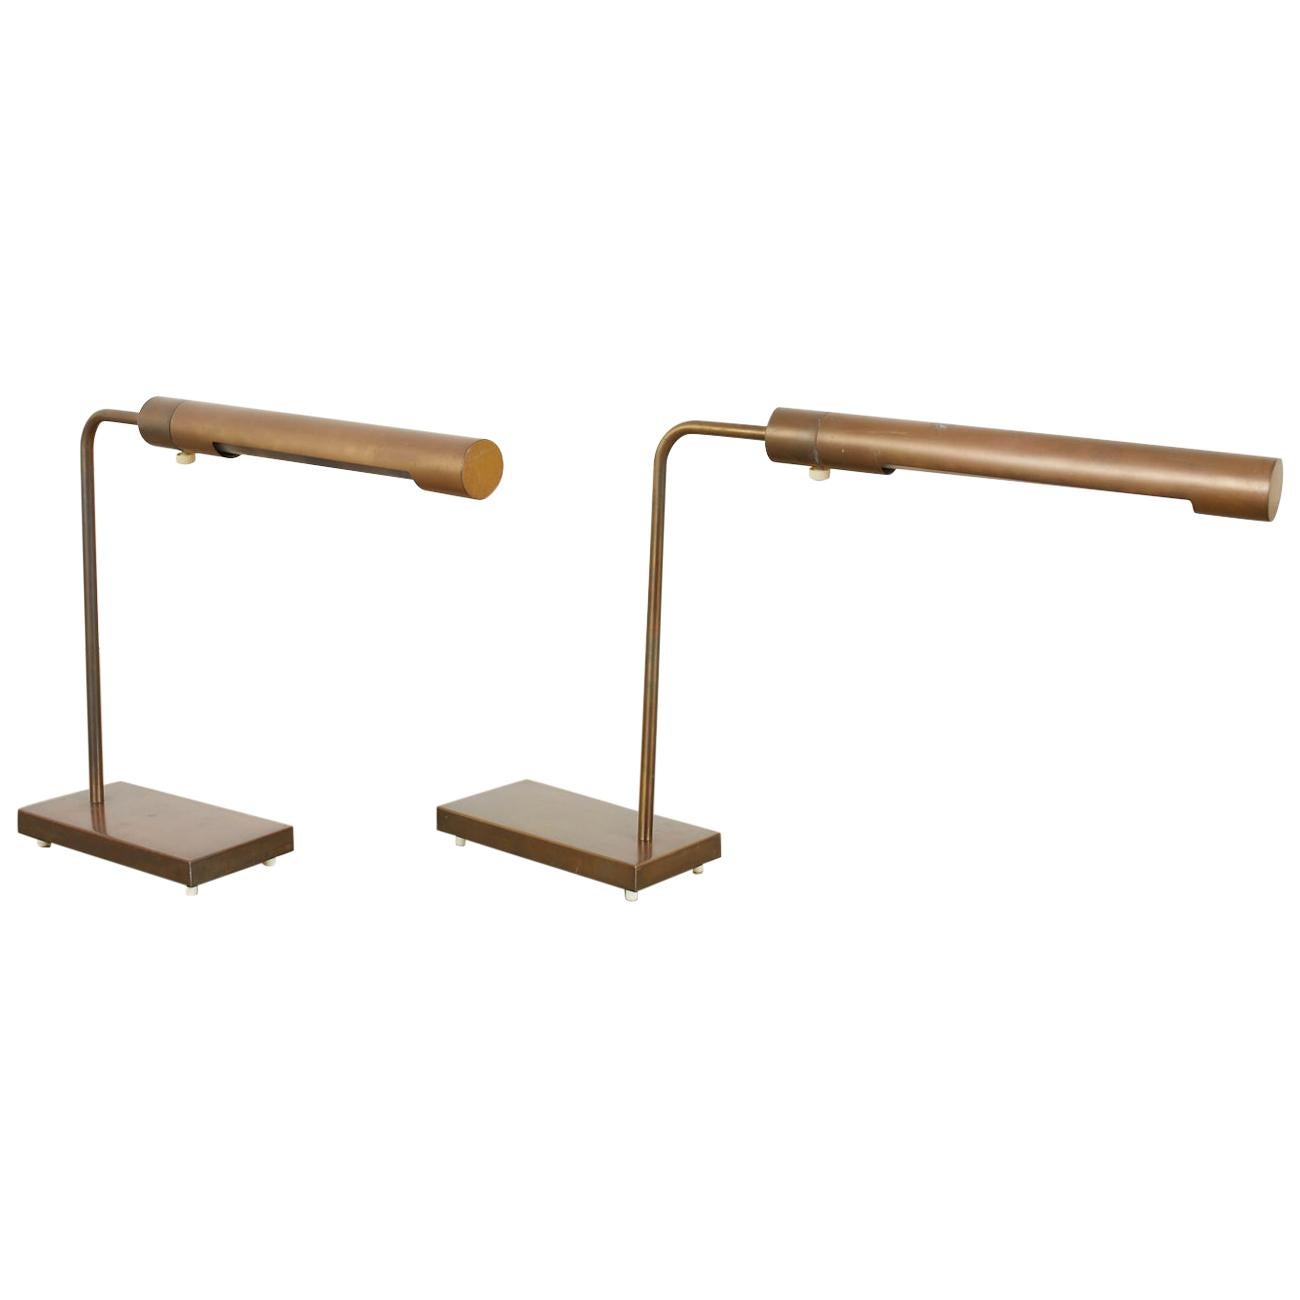 Pair of Casella Midcentury Brass Desk Reading Lamps